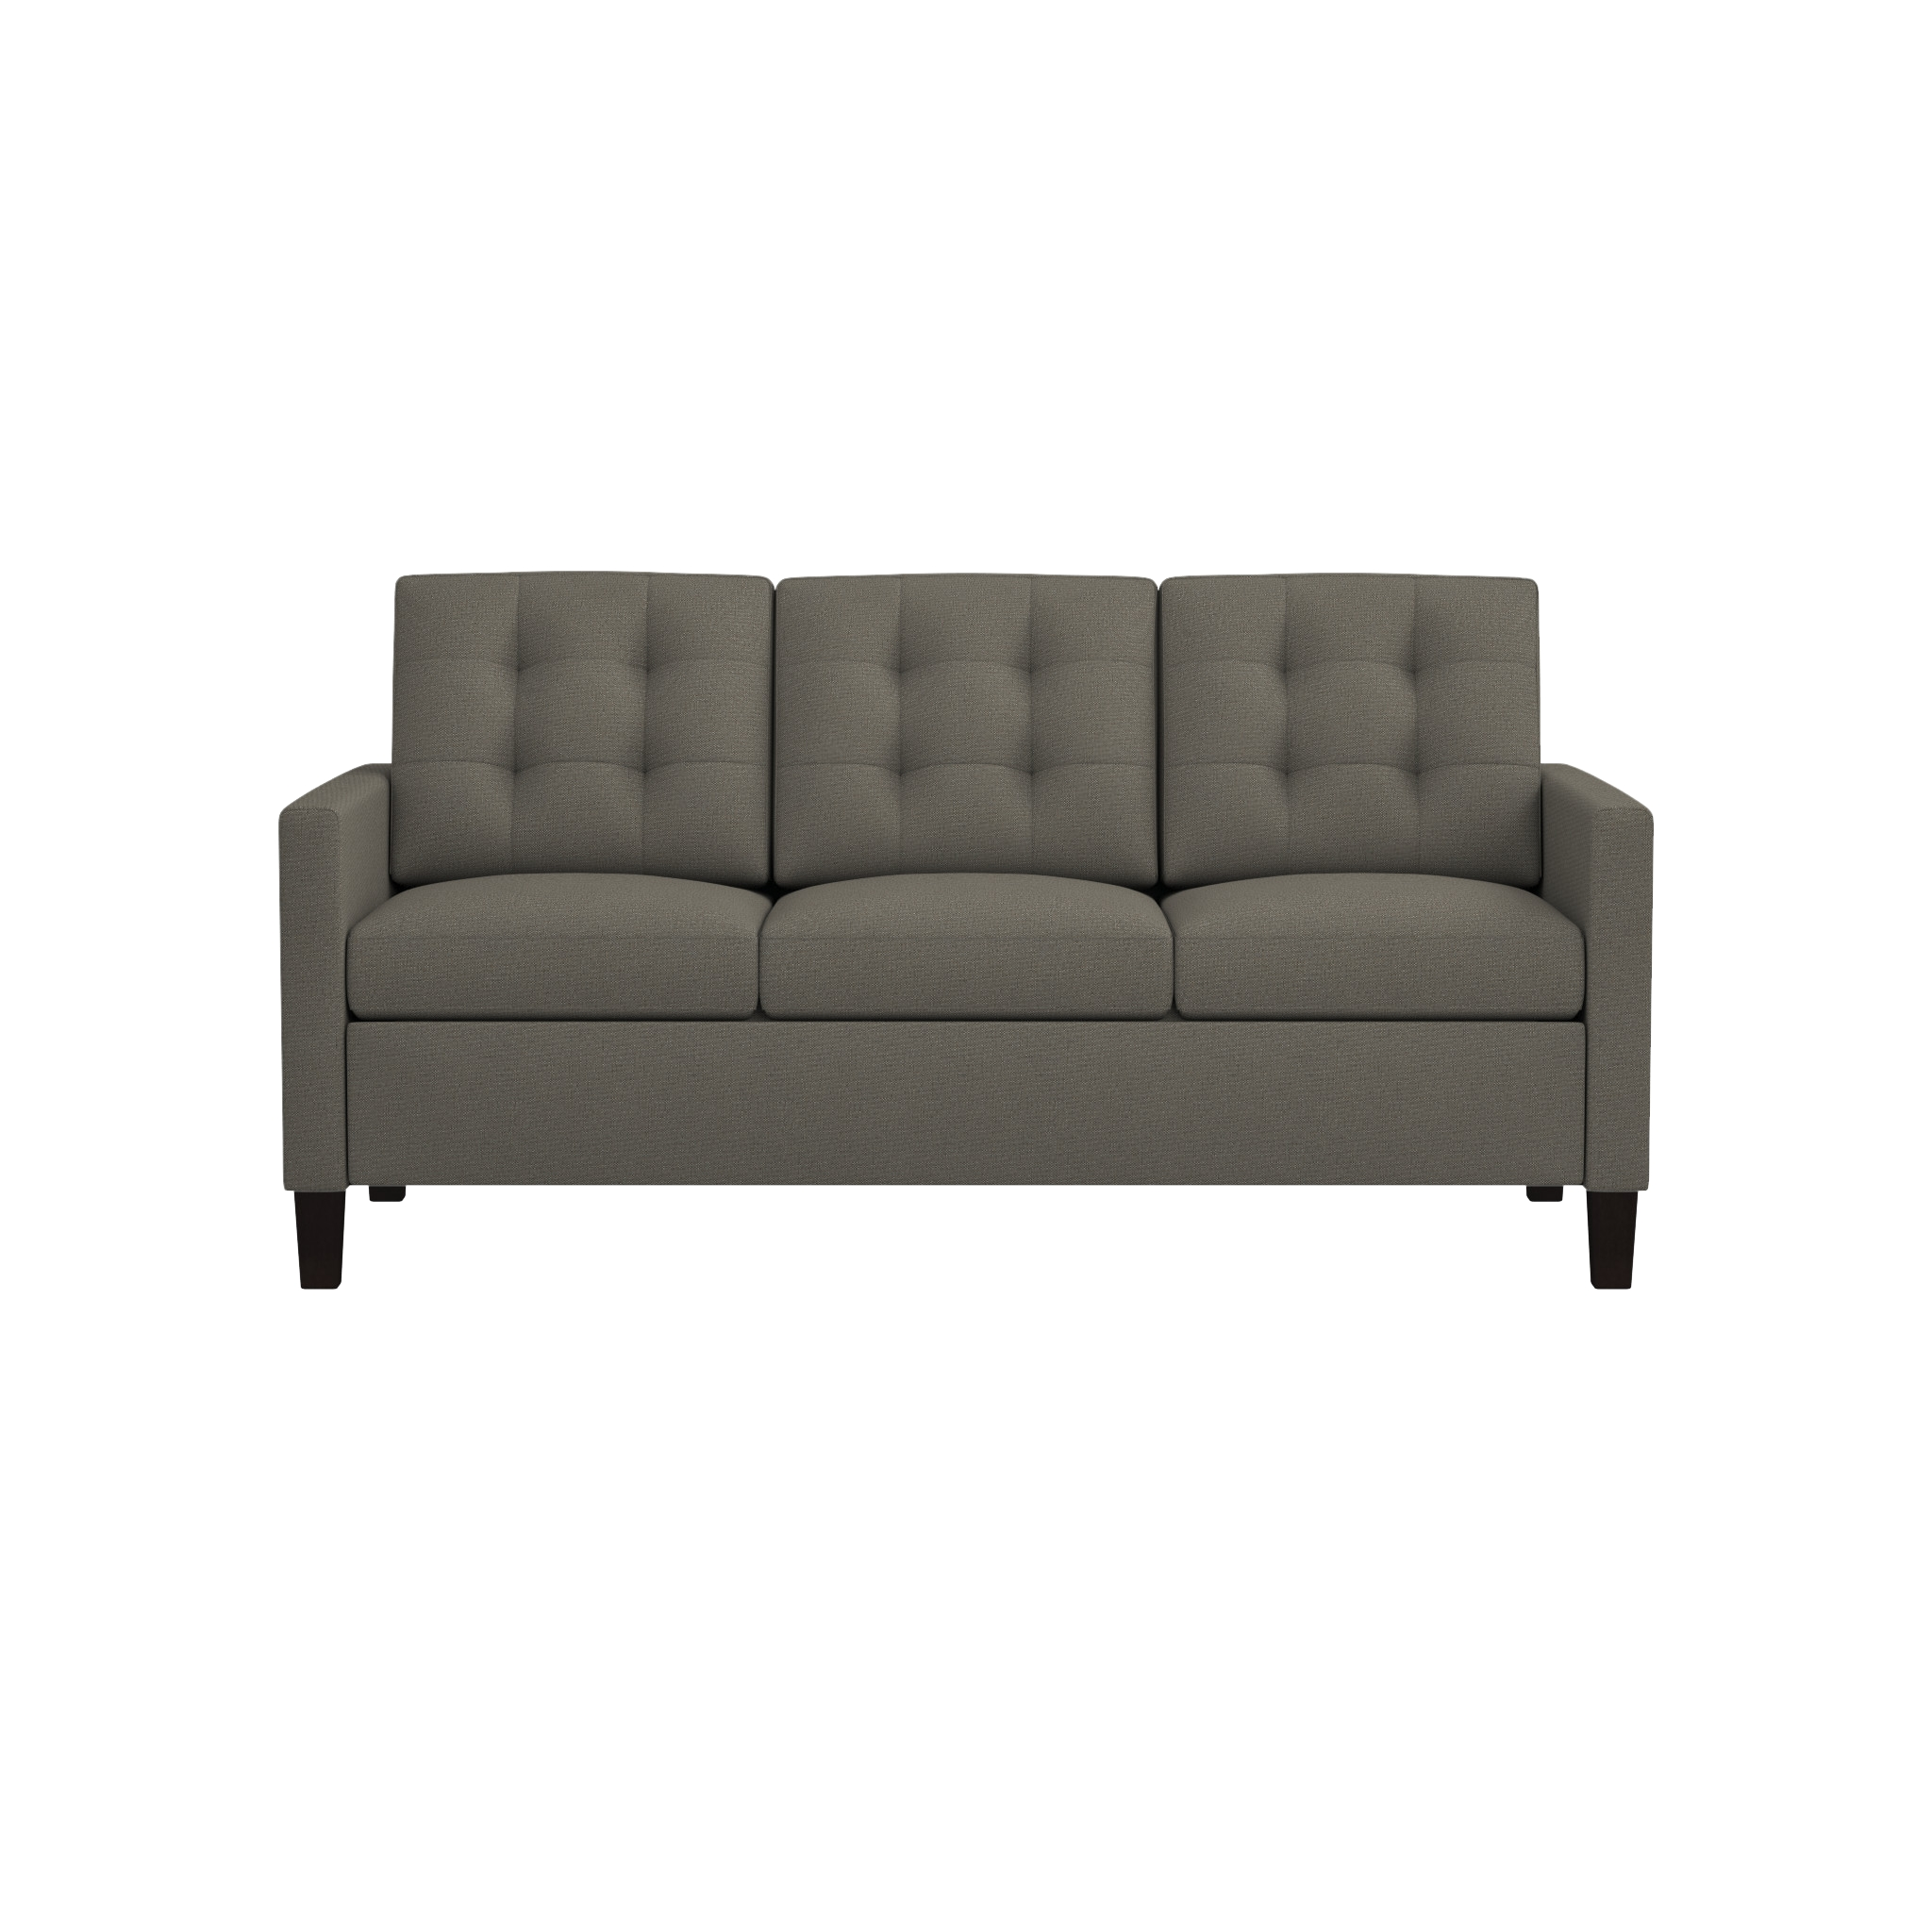 karnes memory foam sleeper sofa crate and barrel throughout crate and barrel sleeper sofas - Crate And Barrel Sleeper Sofa